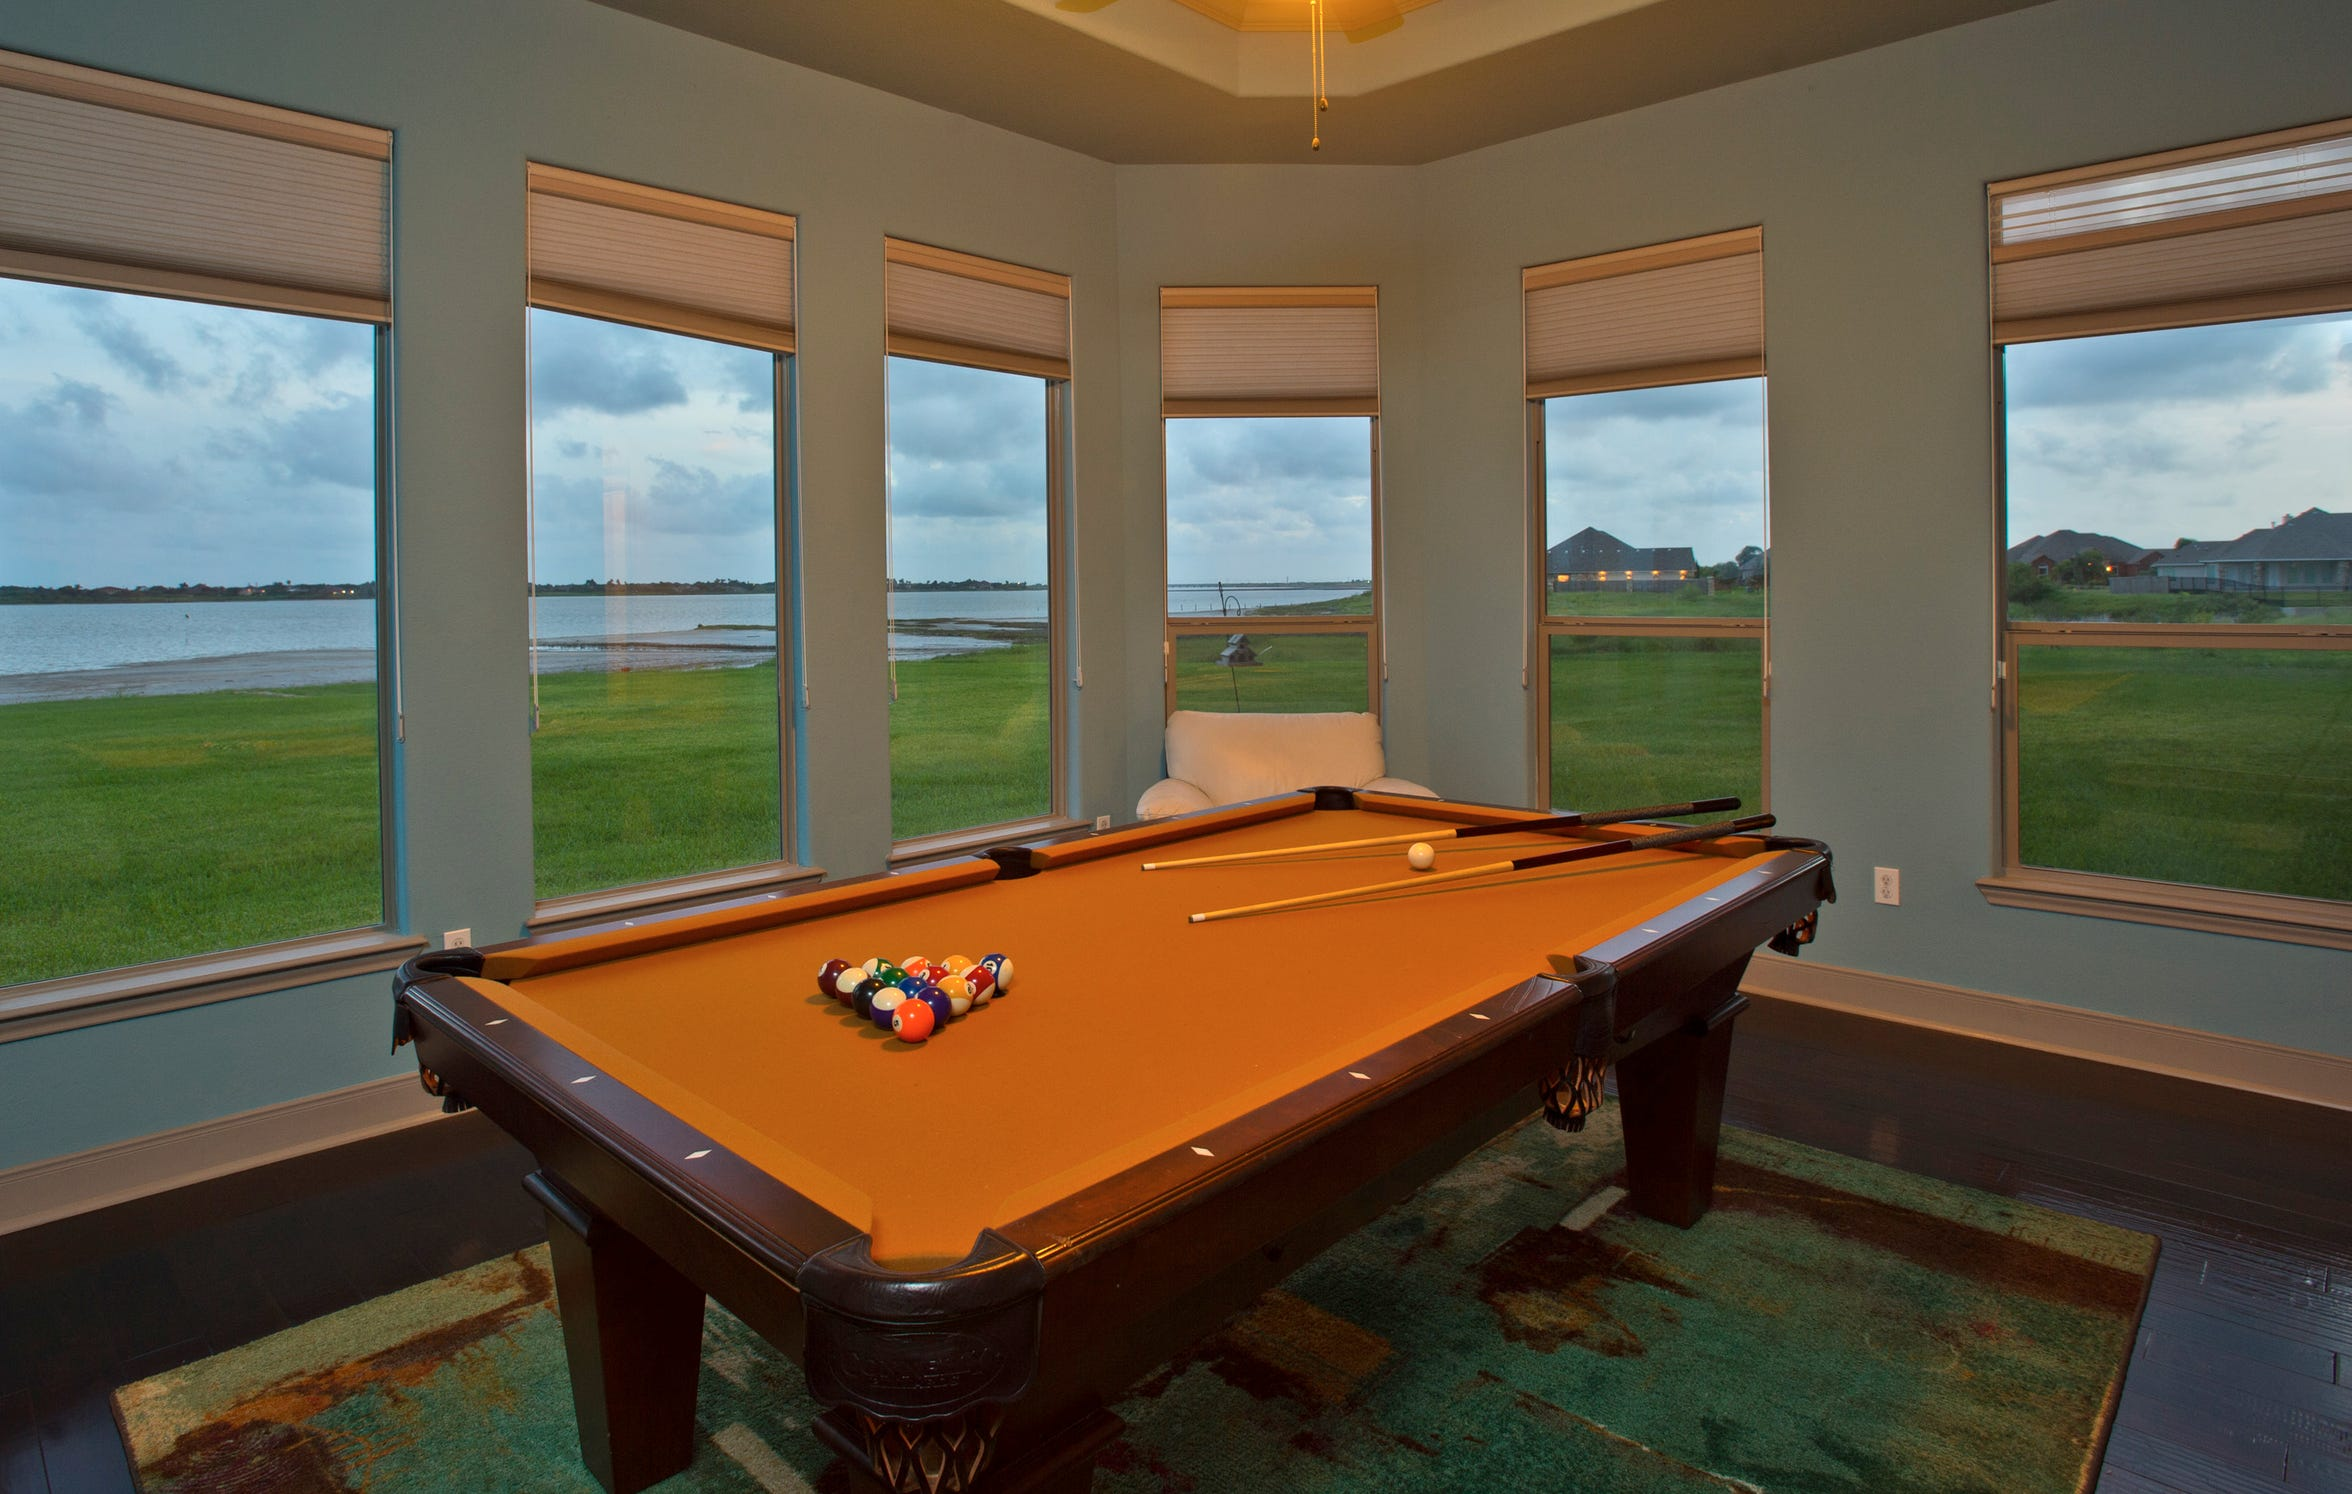 The game room takes in panoramic views of the acreage and Oso Bay.